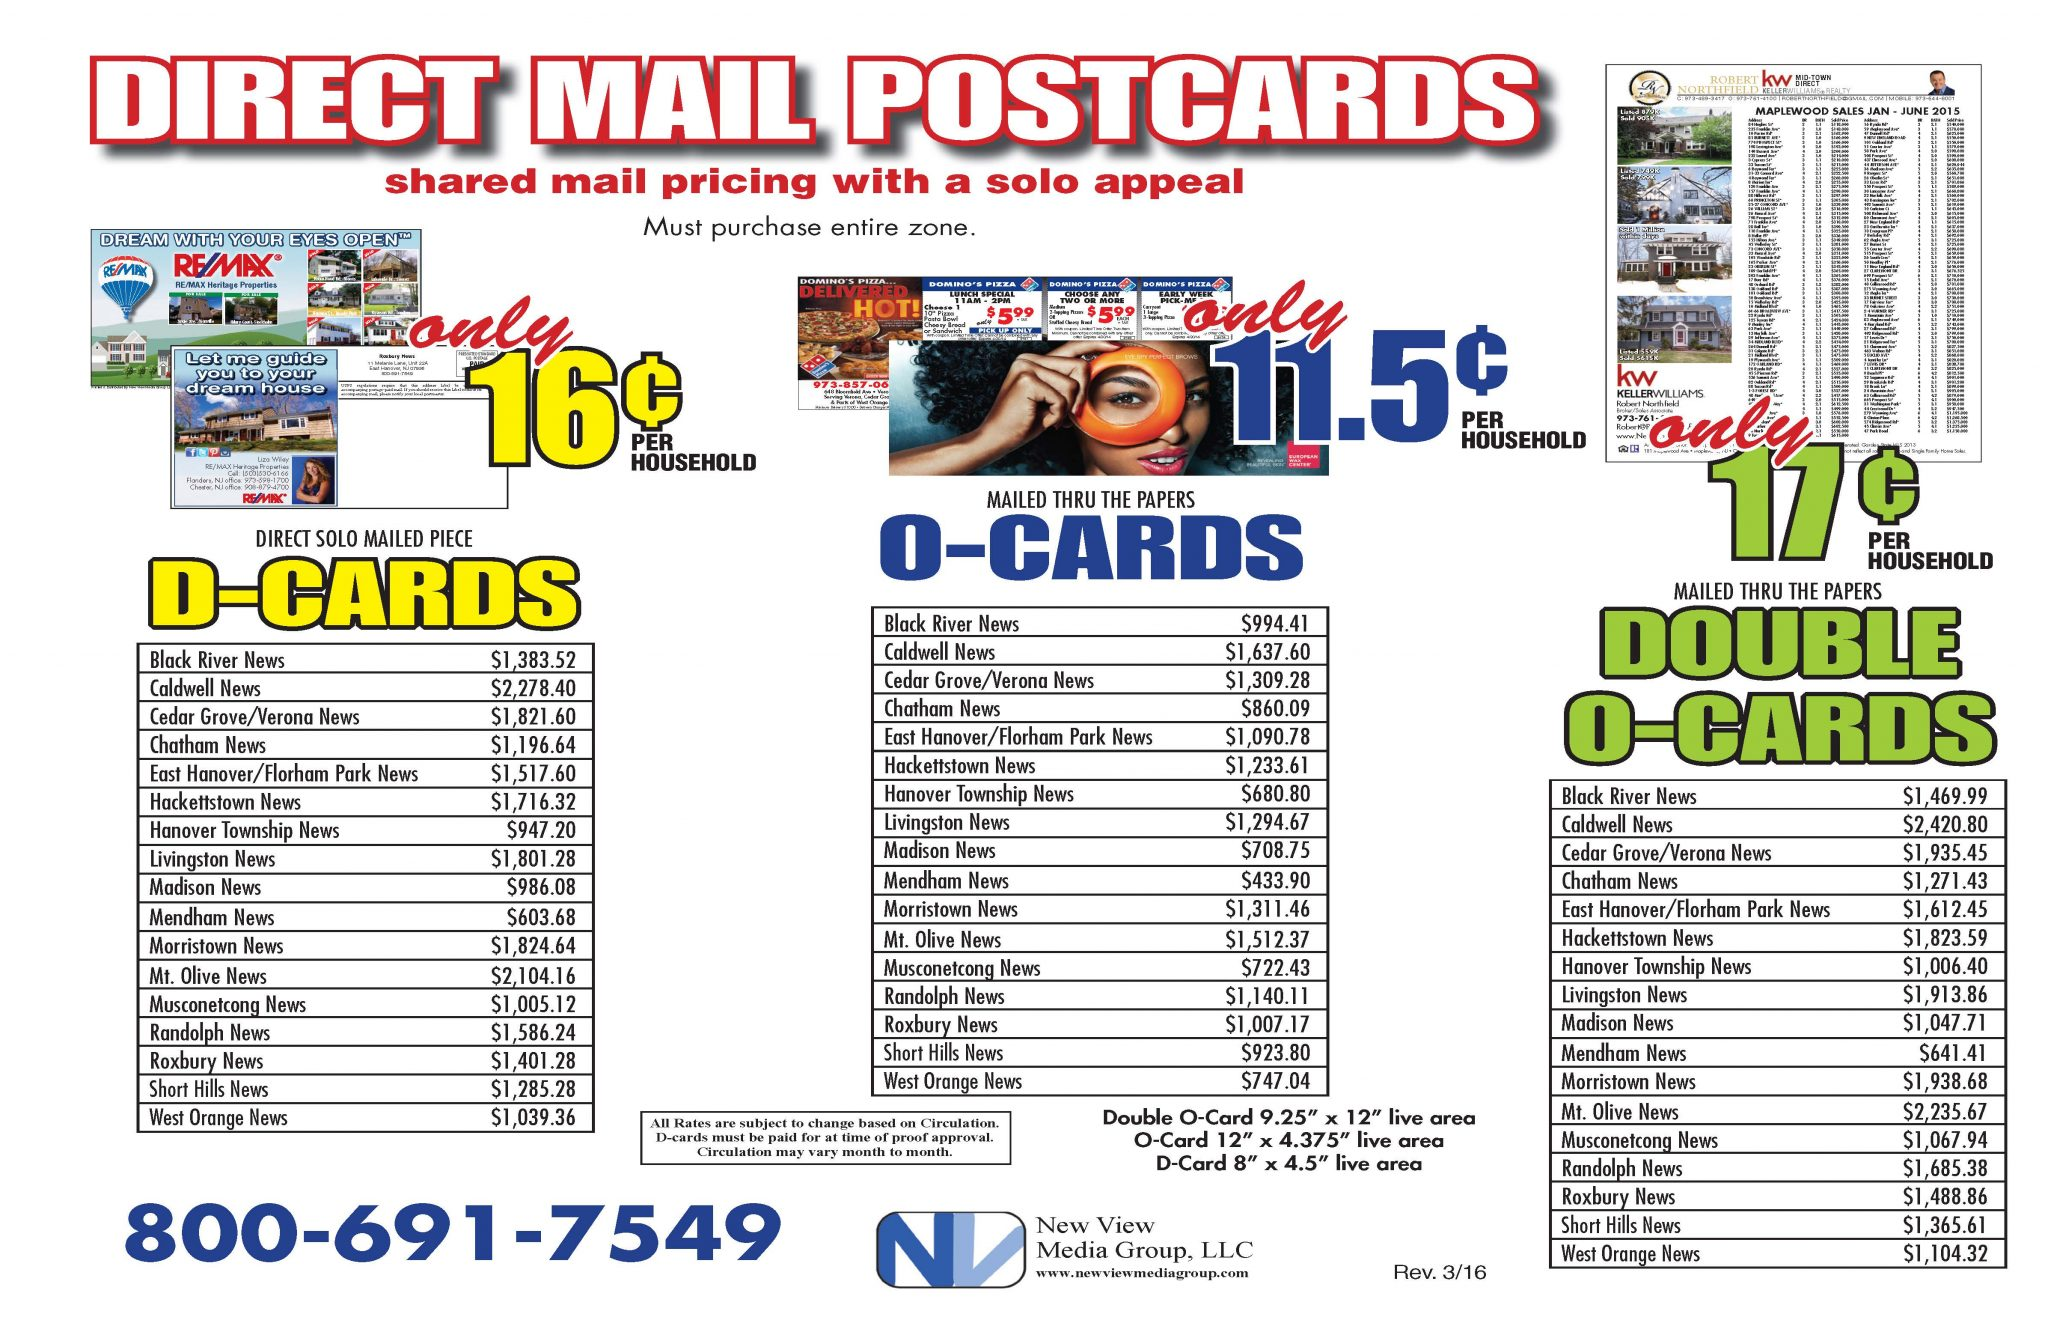 DIRECT MAIL (11)